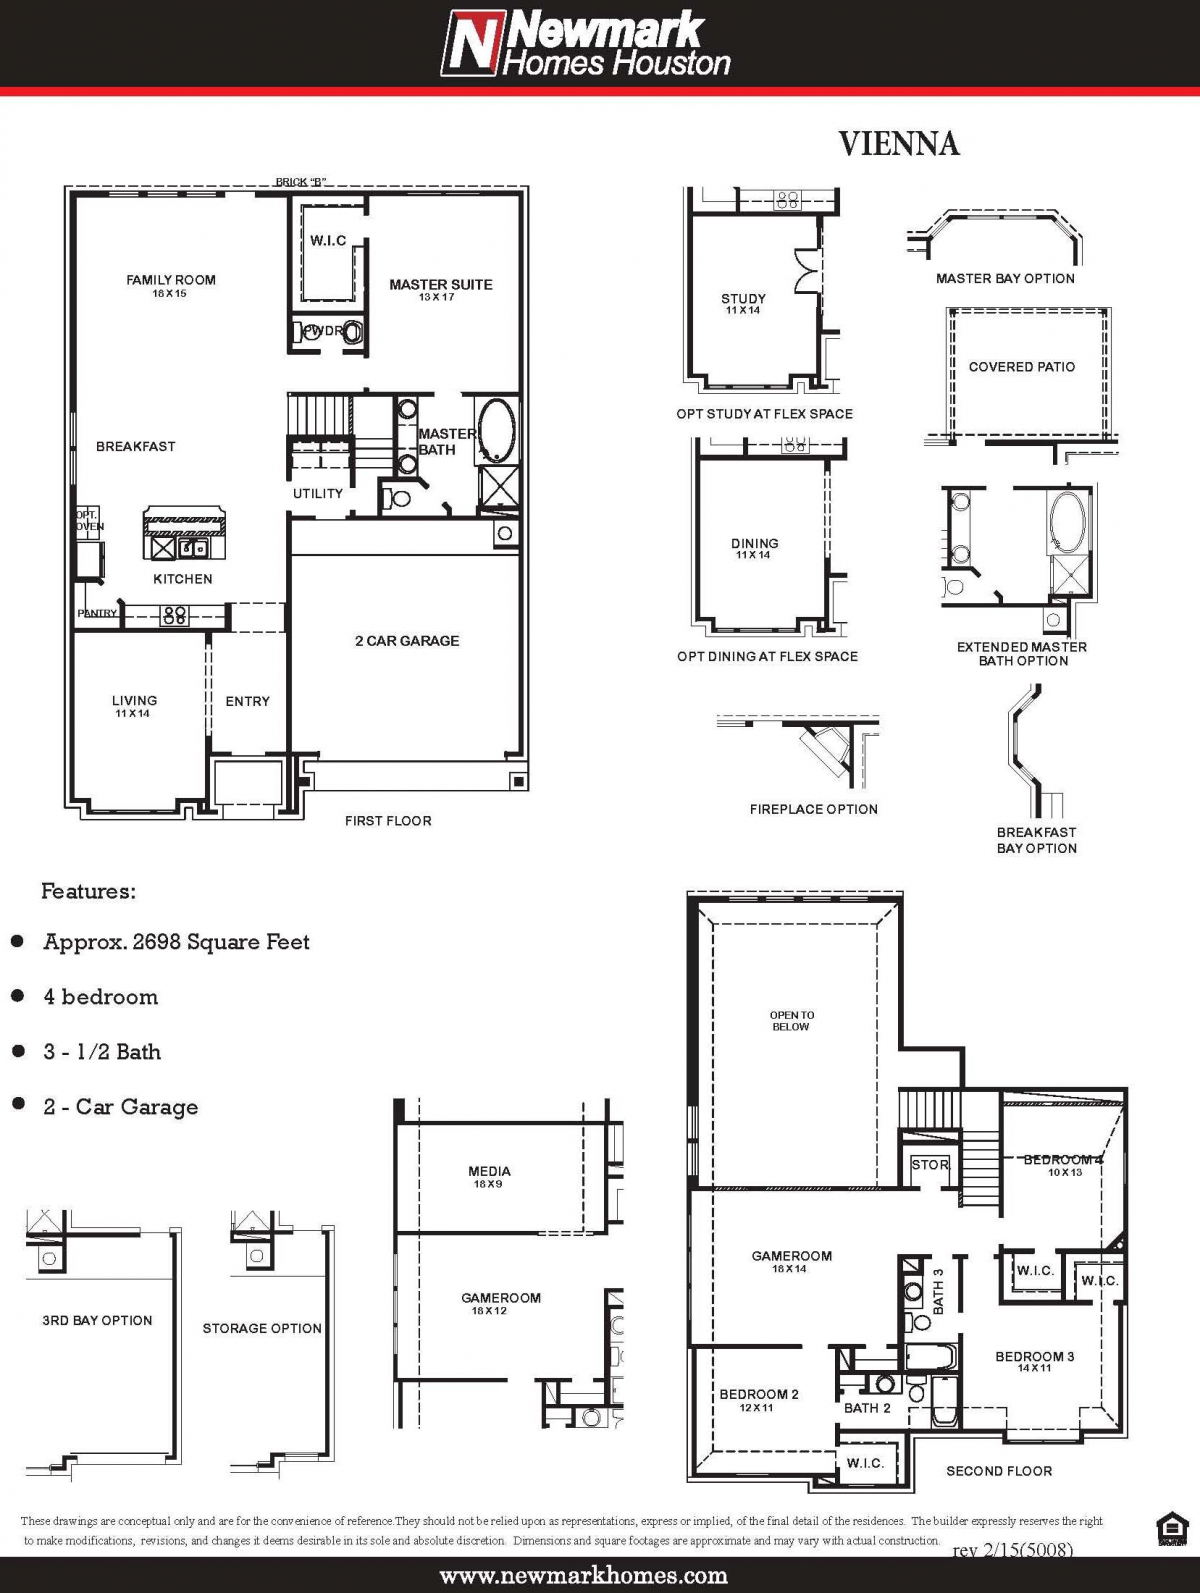 5008 Vienna Floor Plan